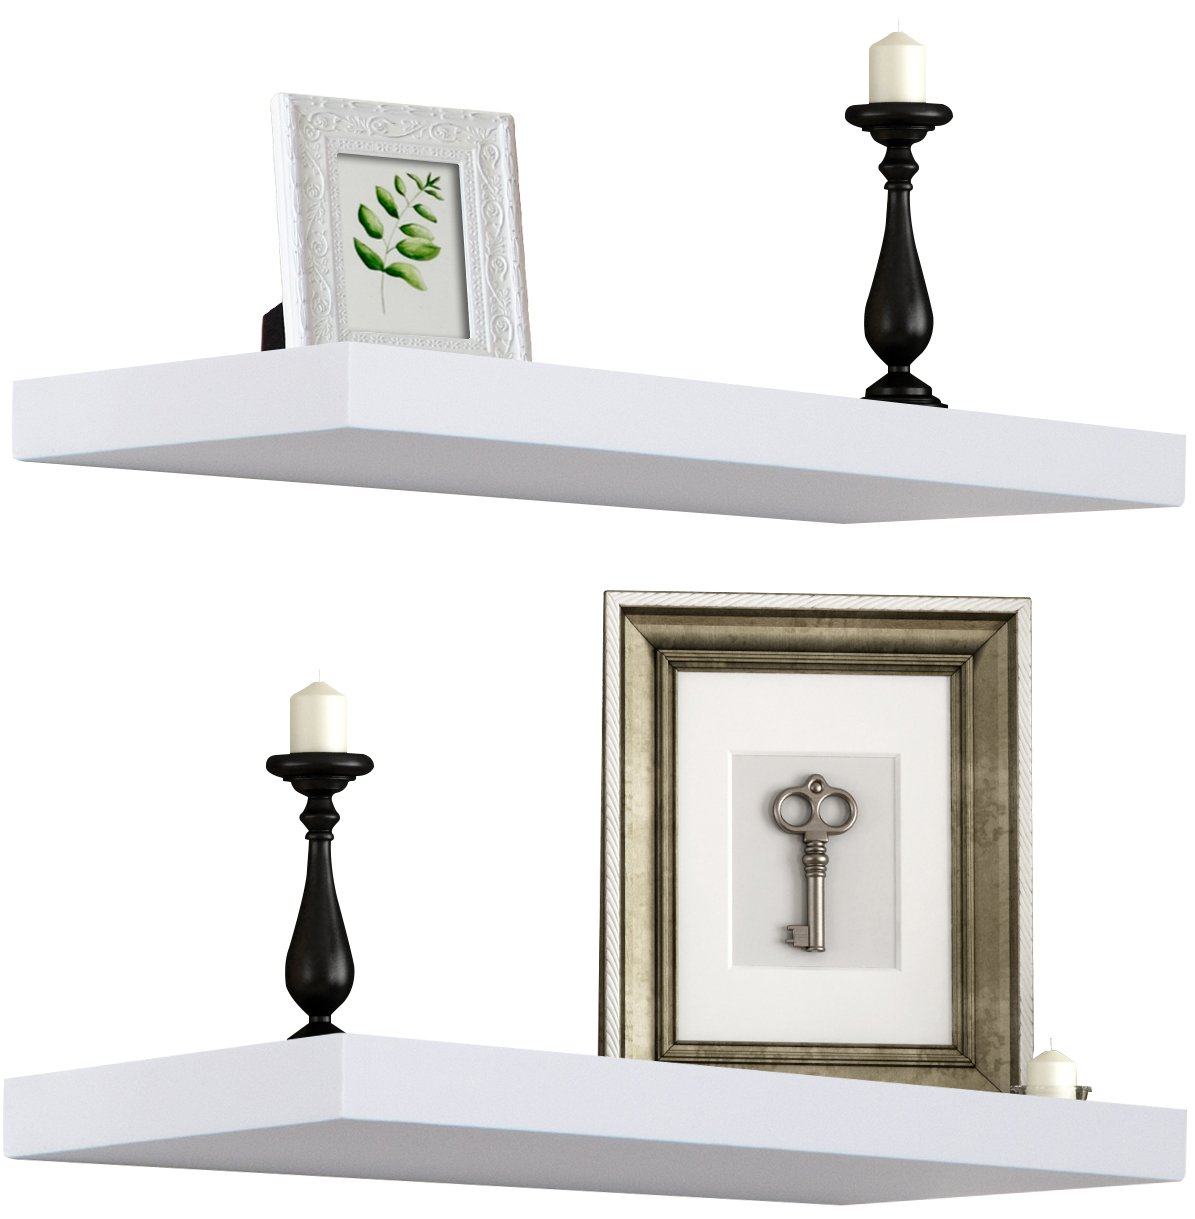 Sorbus Floating Shelf — Hanging Wall Shelves Decoration — Perfect Trophy Display, Photo Frames (White) by Sorbus (Image #1)